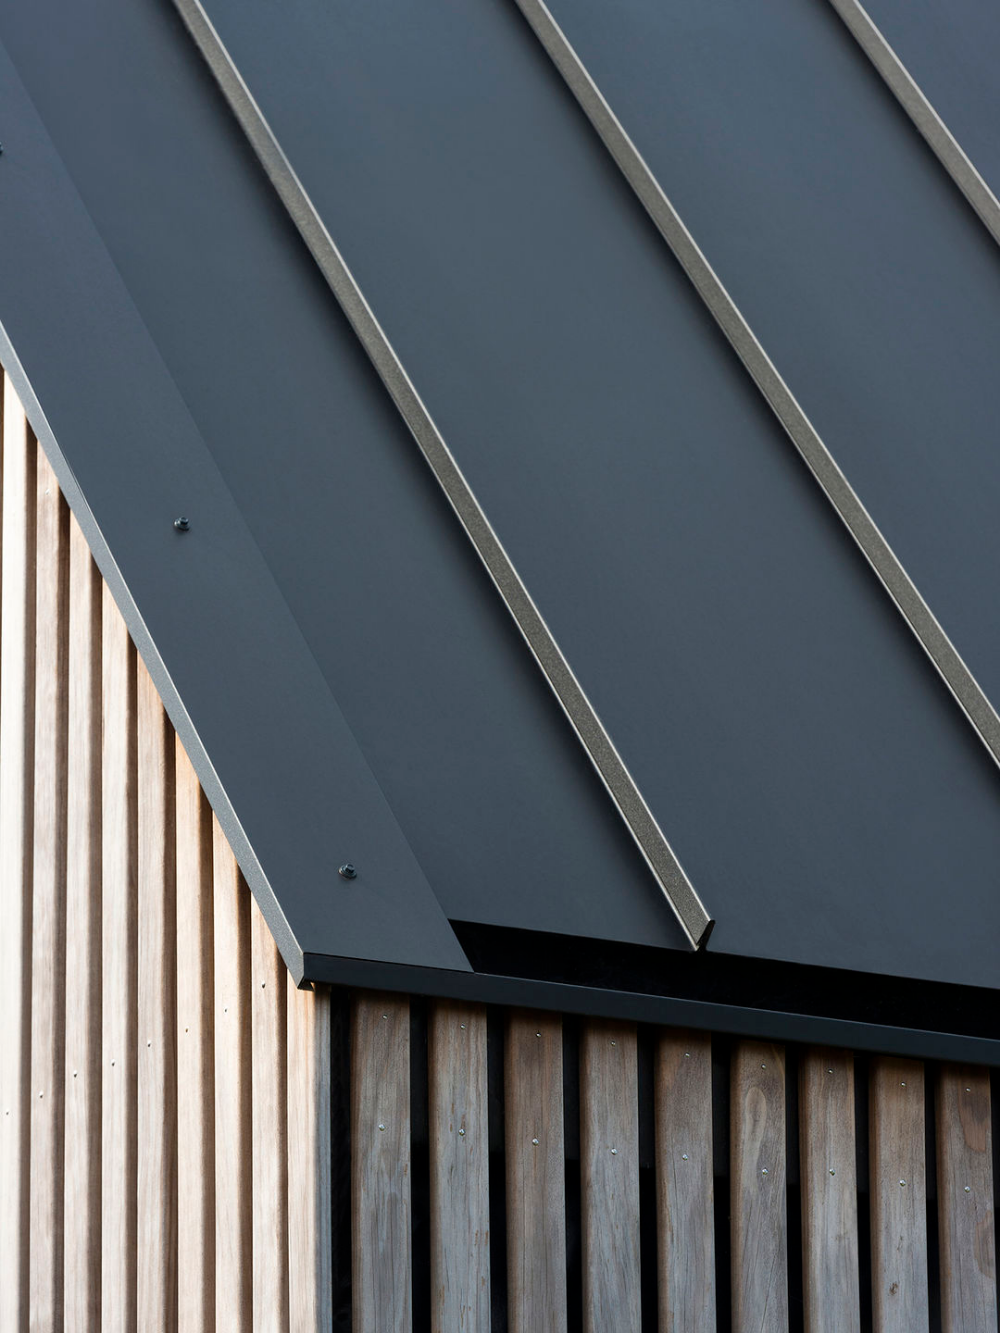 Longhouse Roof Cladding Roof Architecture House Cladding